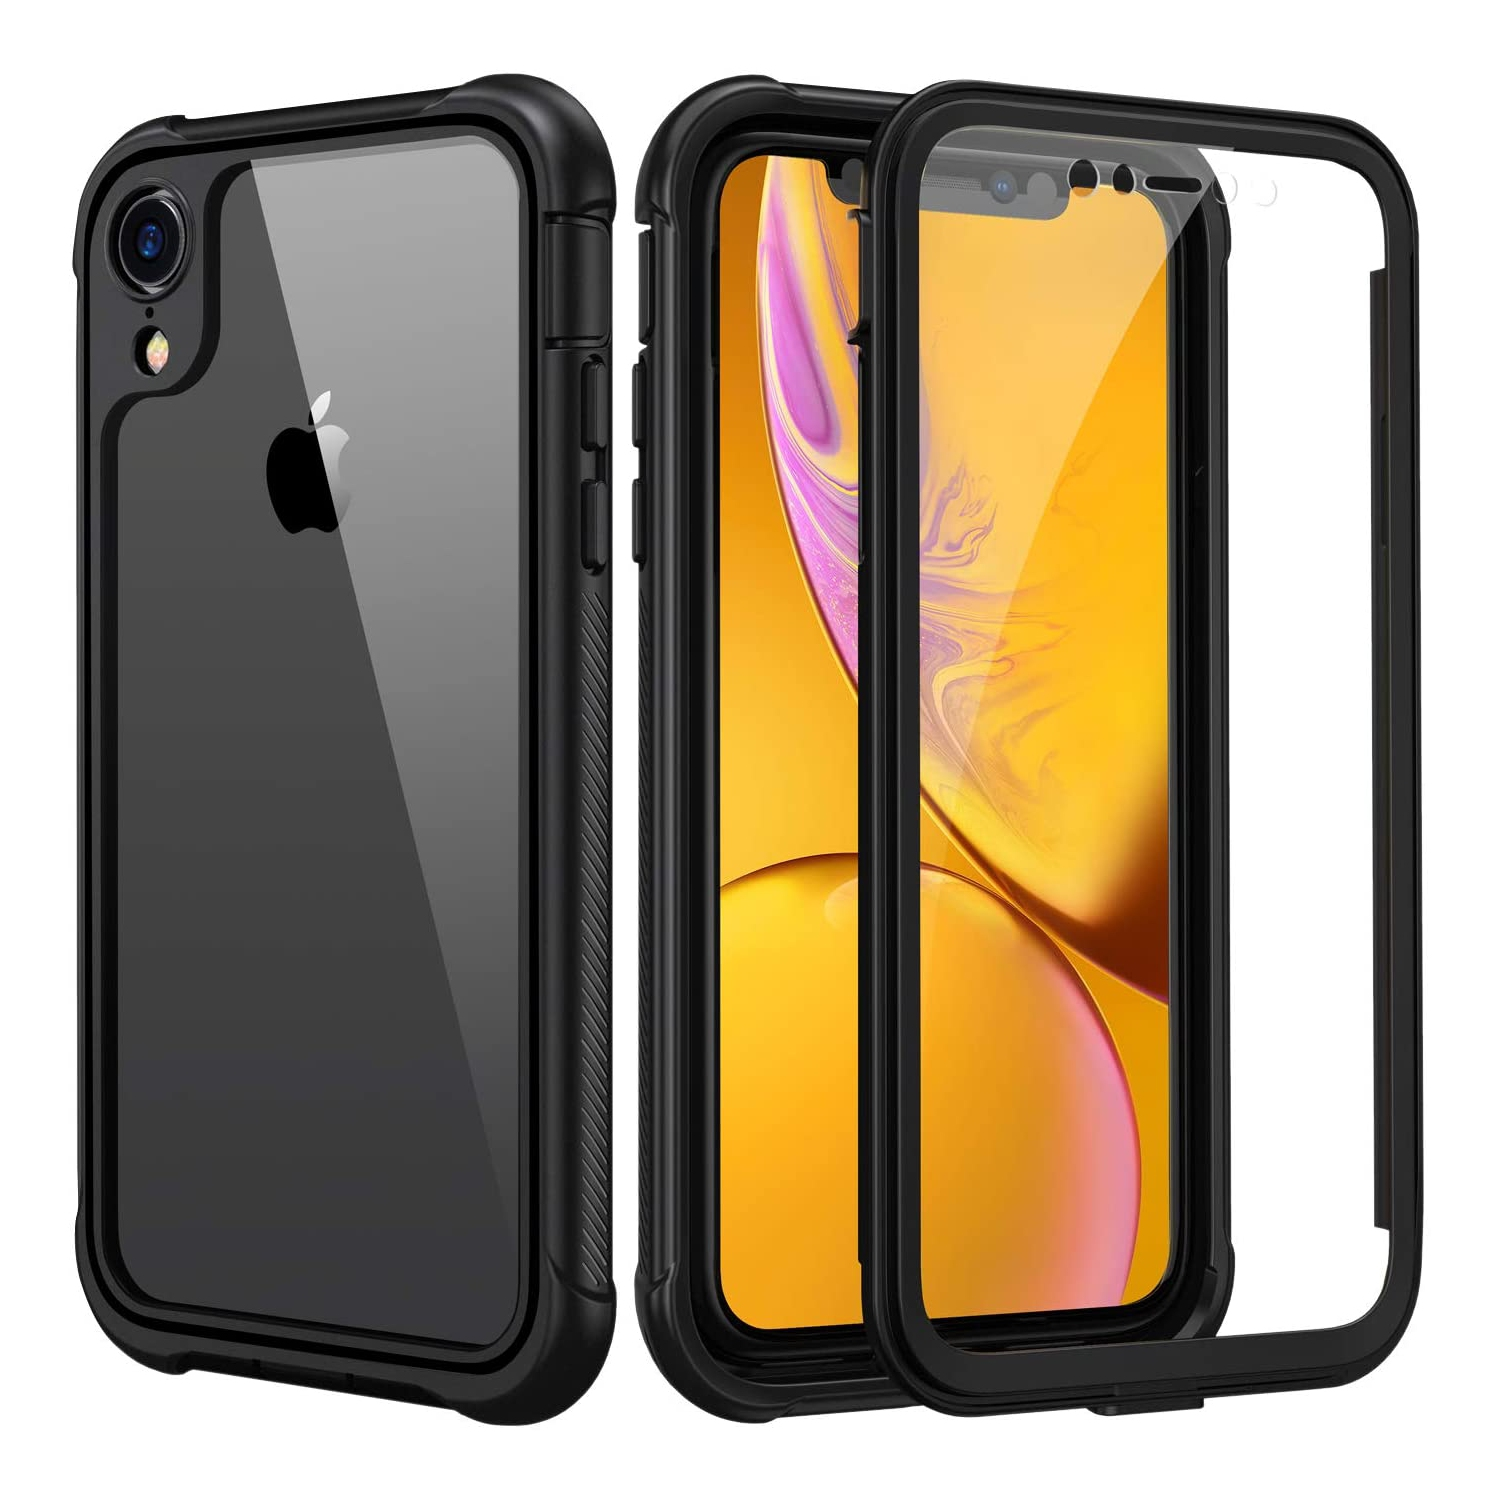 Seacosmo iPhone XR Case, [Built-in Screen Protector] Full Body Clear Bumper Phone Case Rugged Shockproof Protective